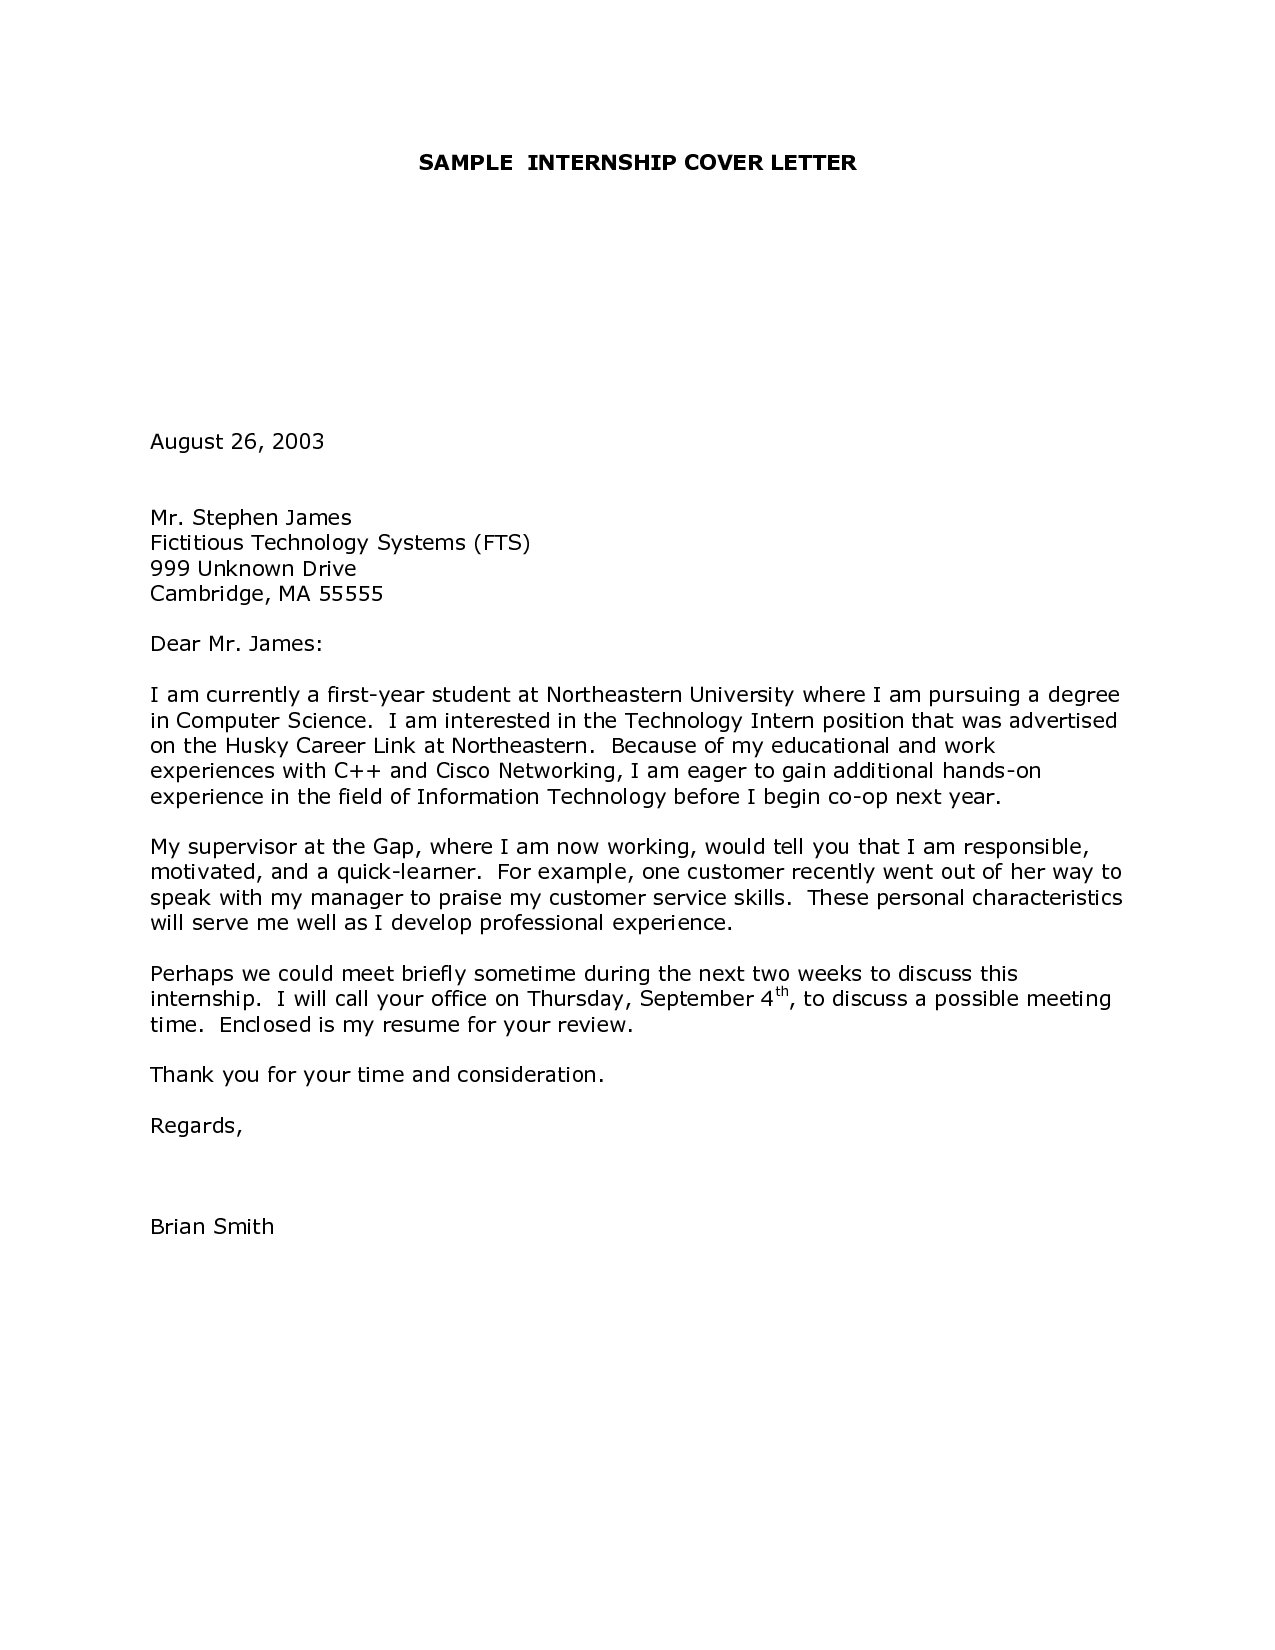 design internship cover letters